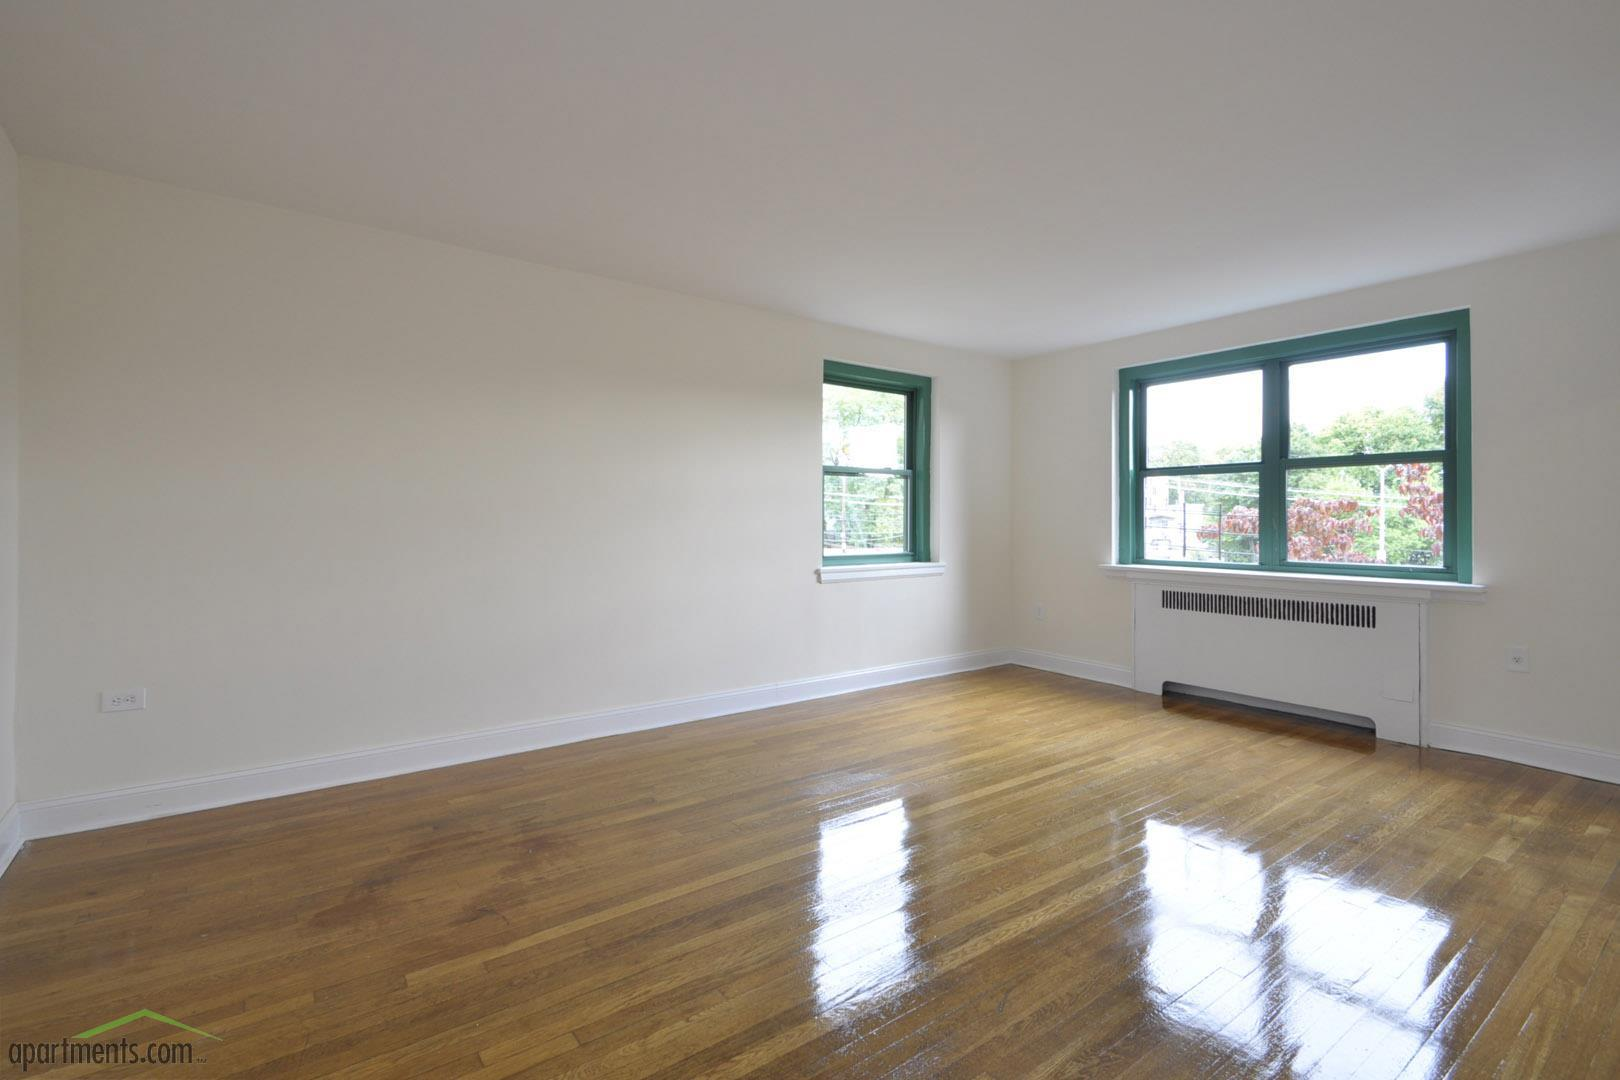 Glenwood garden apartments yonkers ny walk score - 1 bedroom apartments for rent in yonkers ny ...